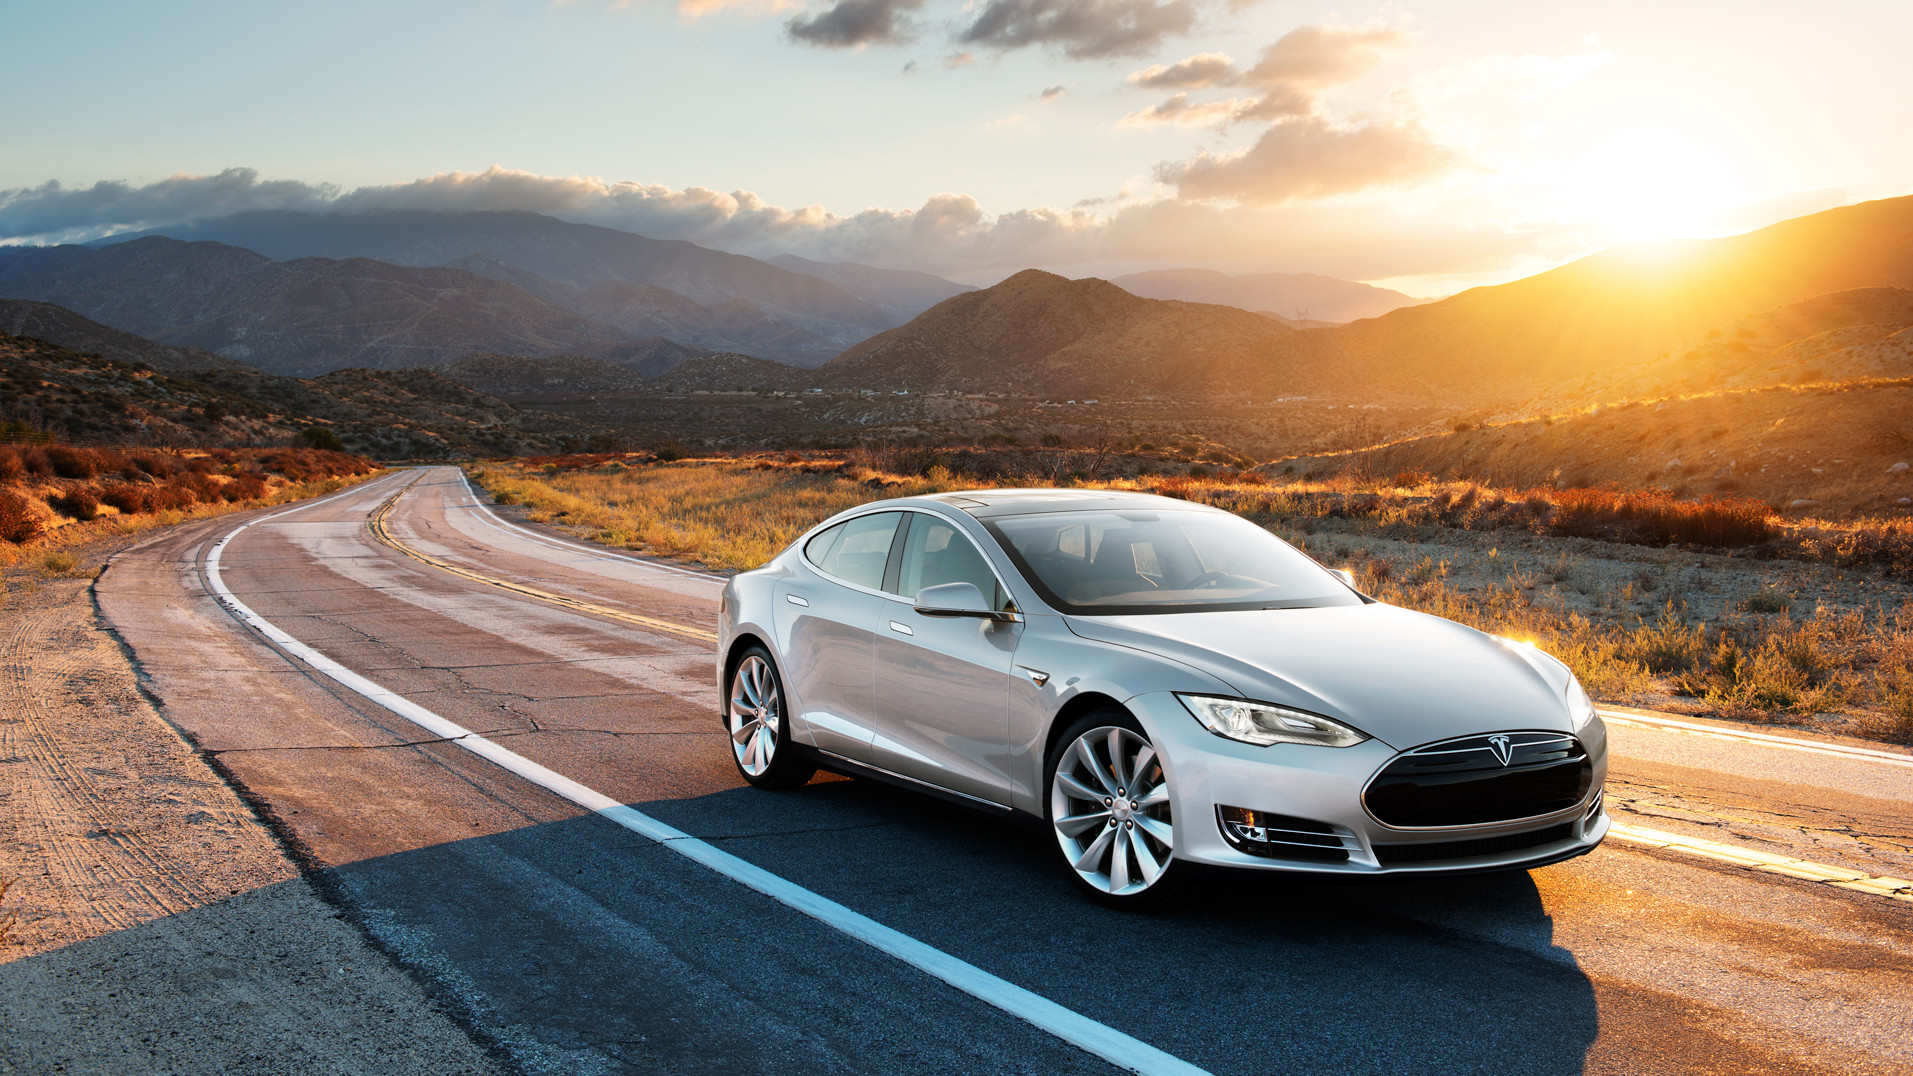 Video: Tesla Model S brennt ab nach Unfall